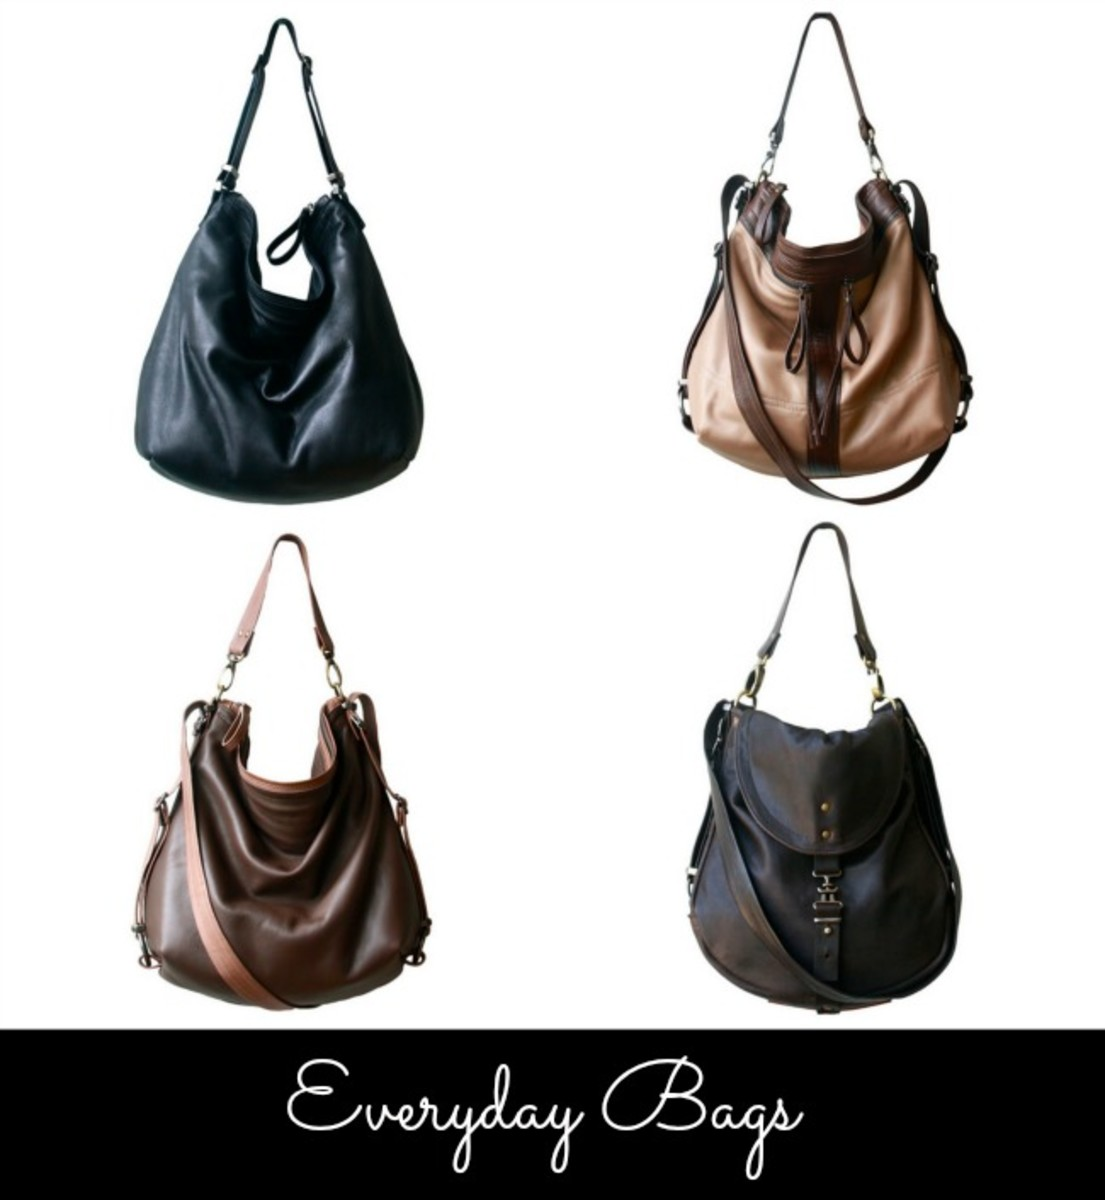 everydaybags